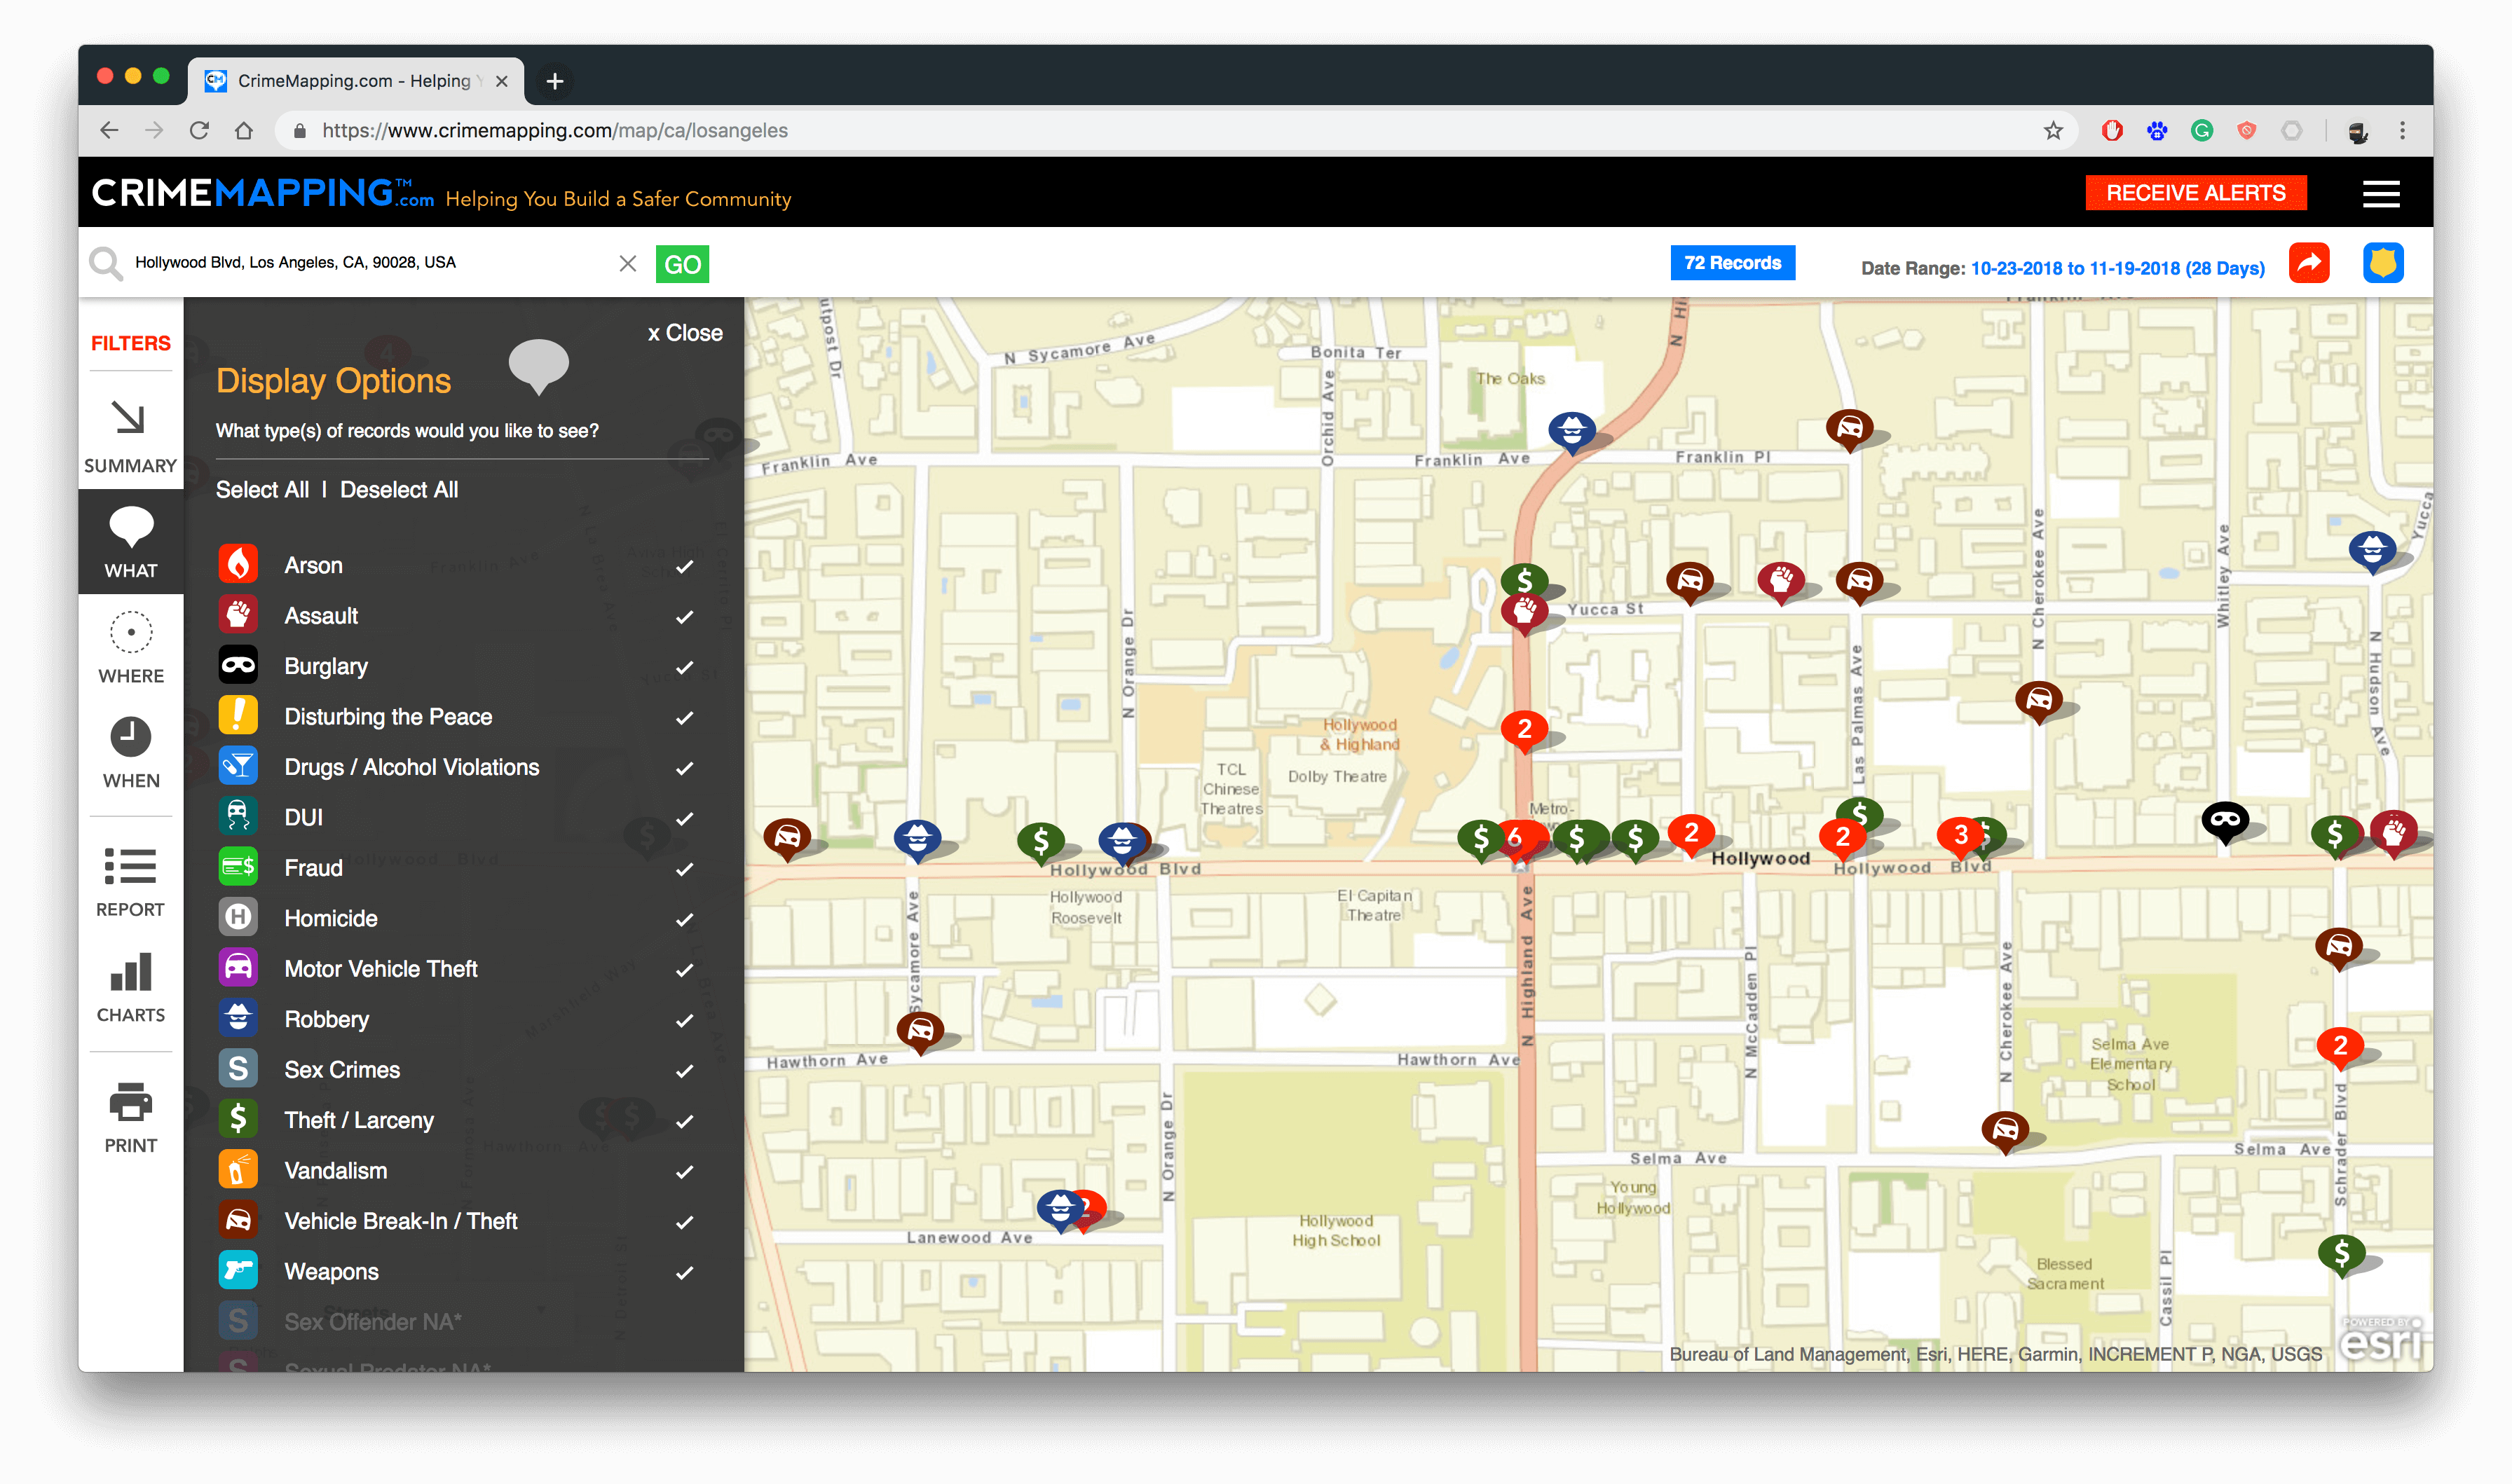 Crime Mapping Service